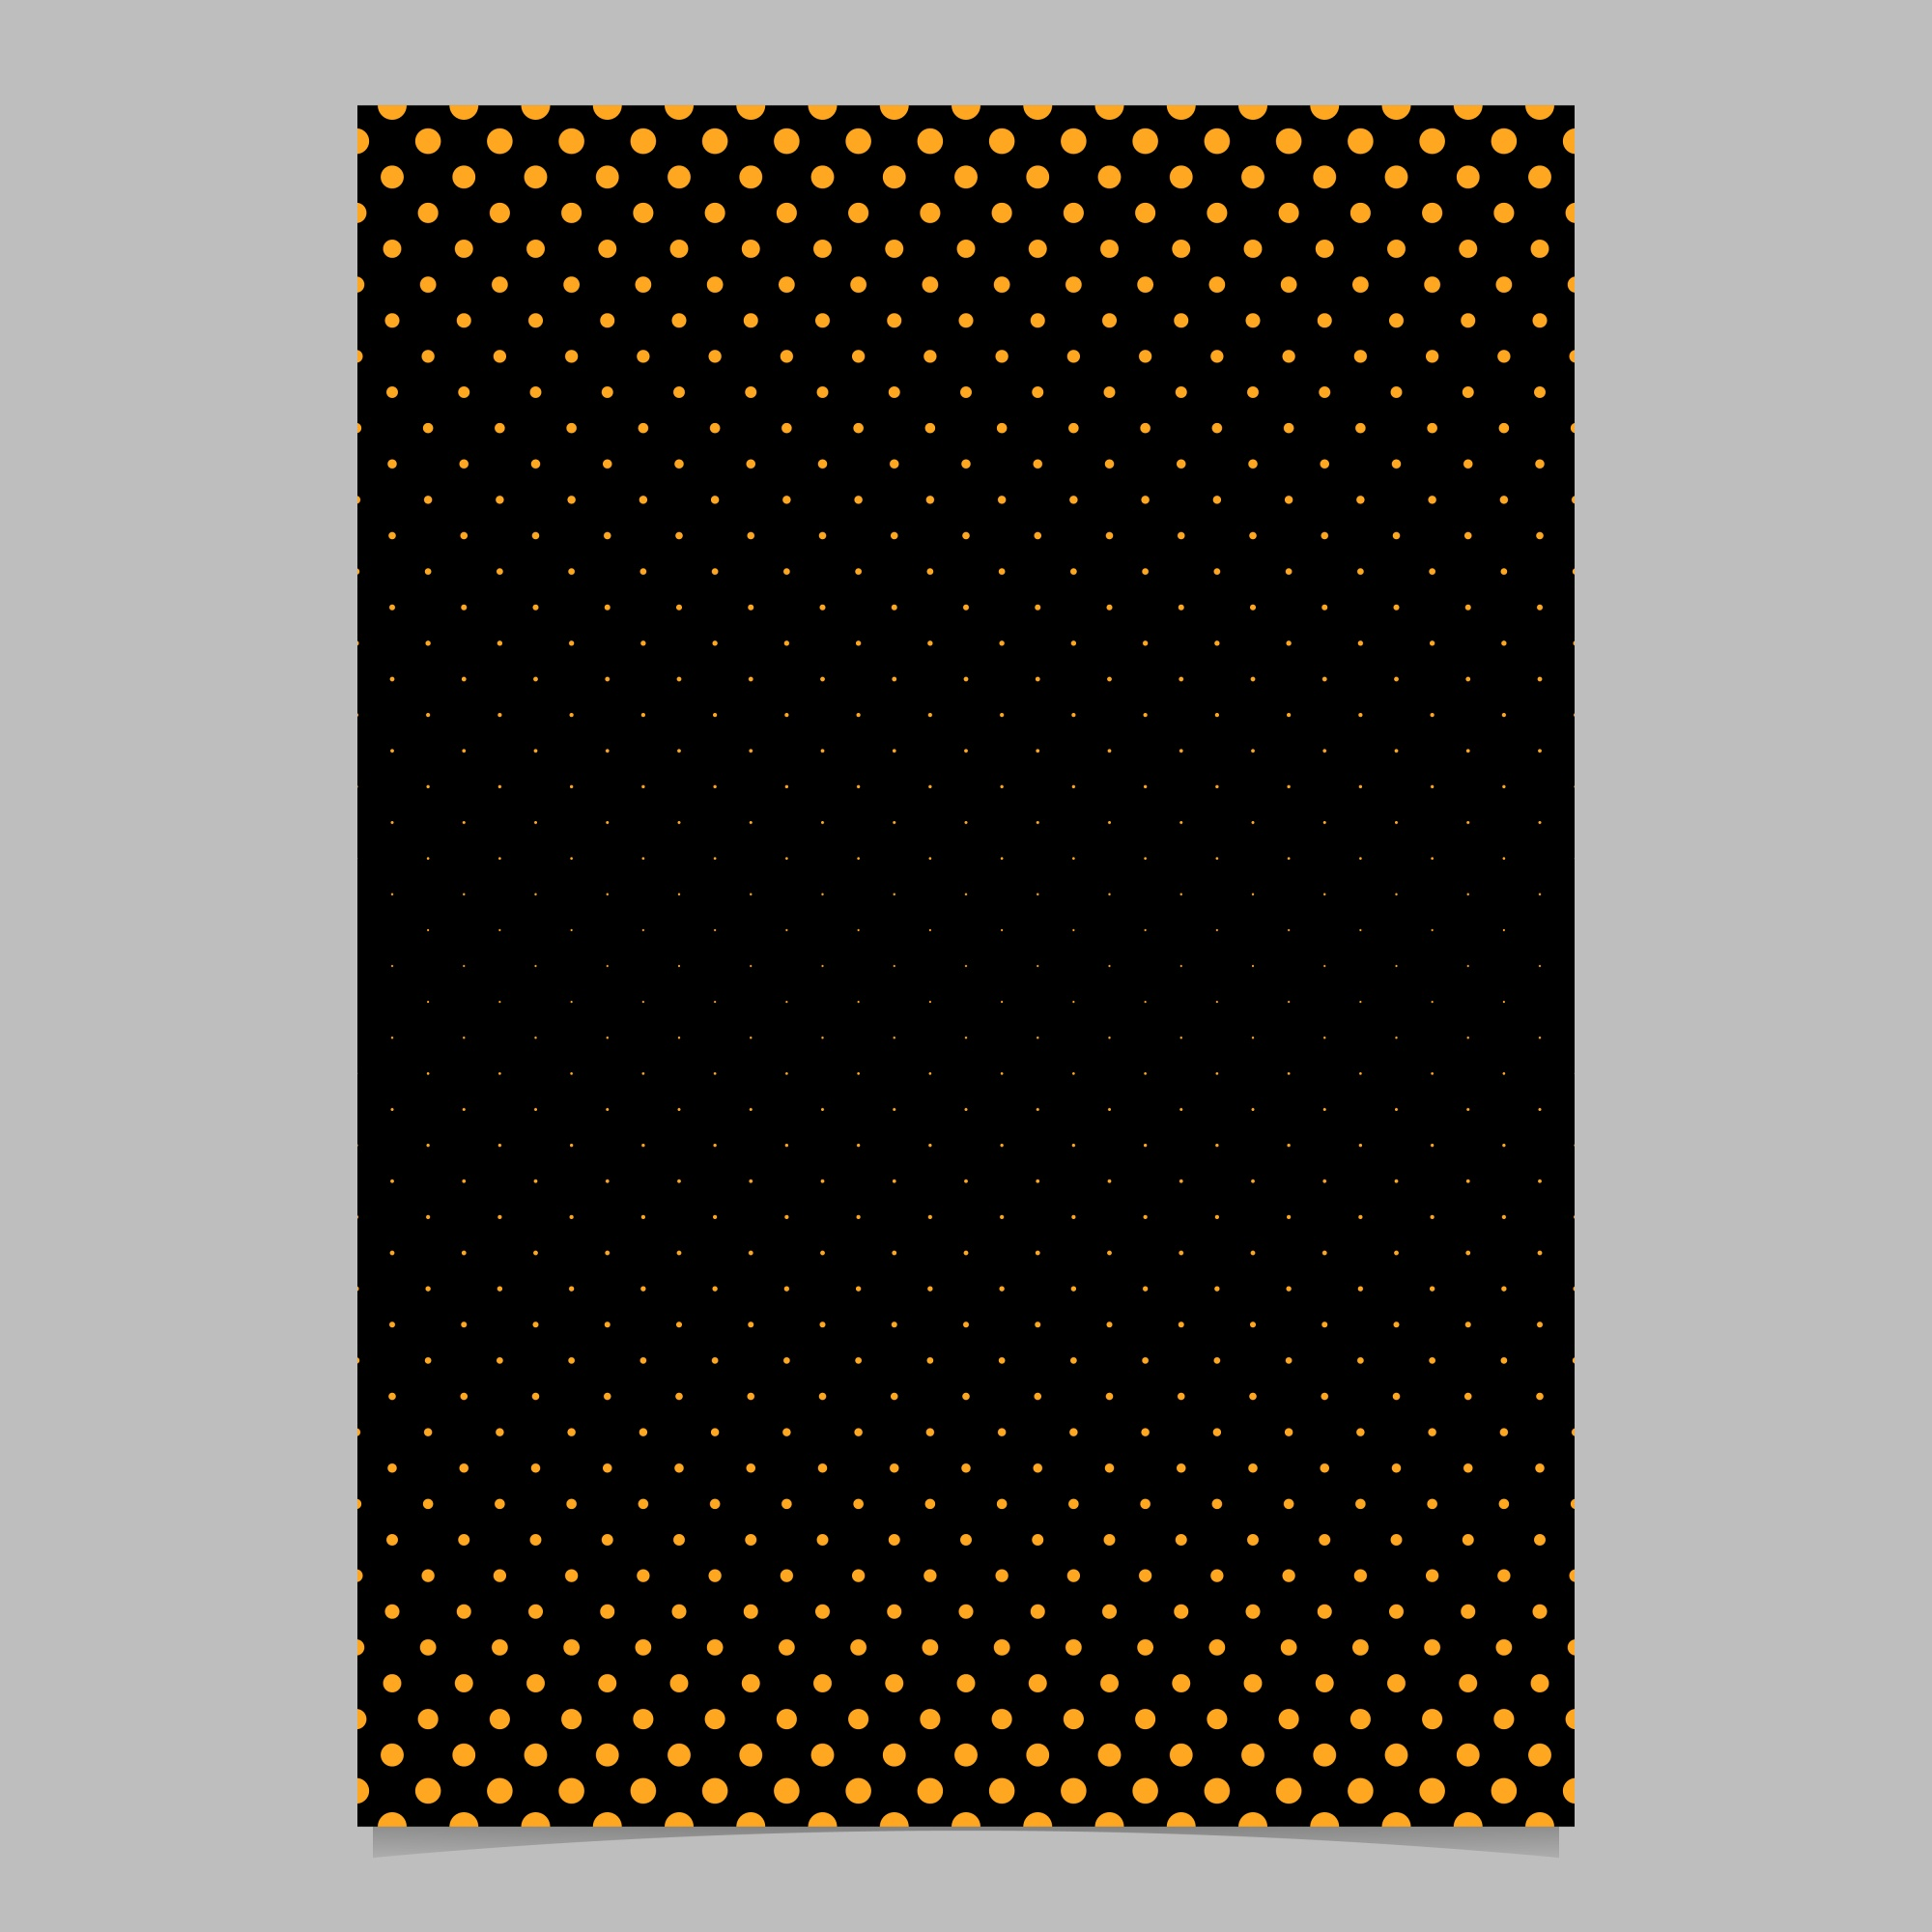 Abstract simple halftone dot pattern cover template - vector flyer background graphic with circle pattern